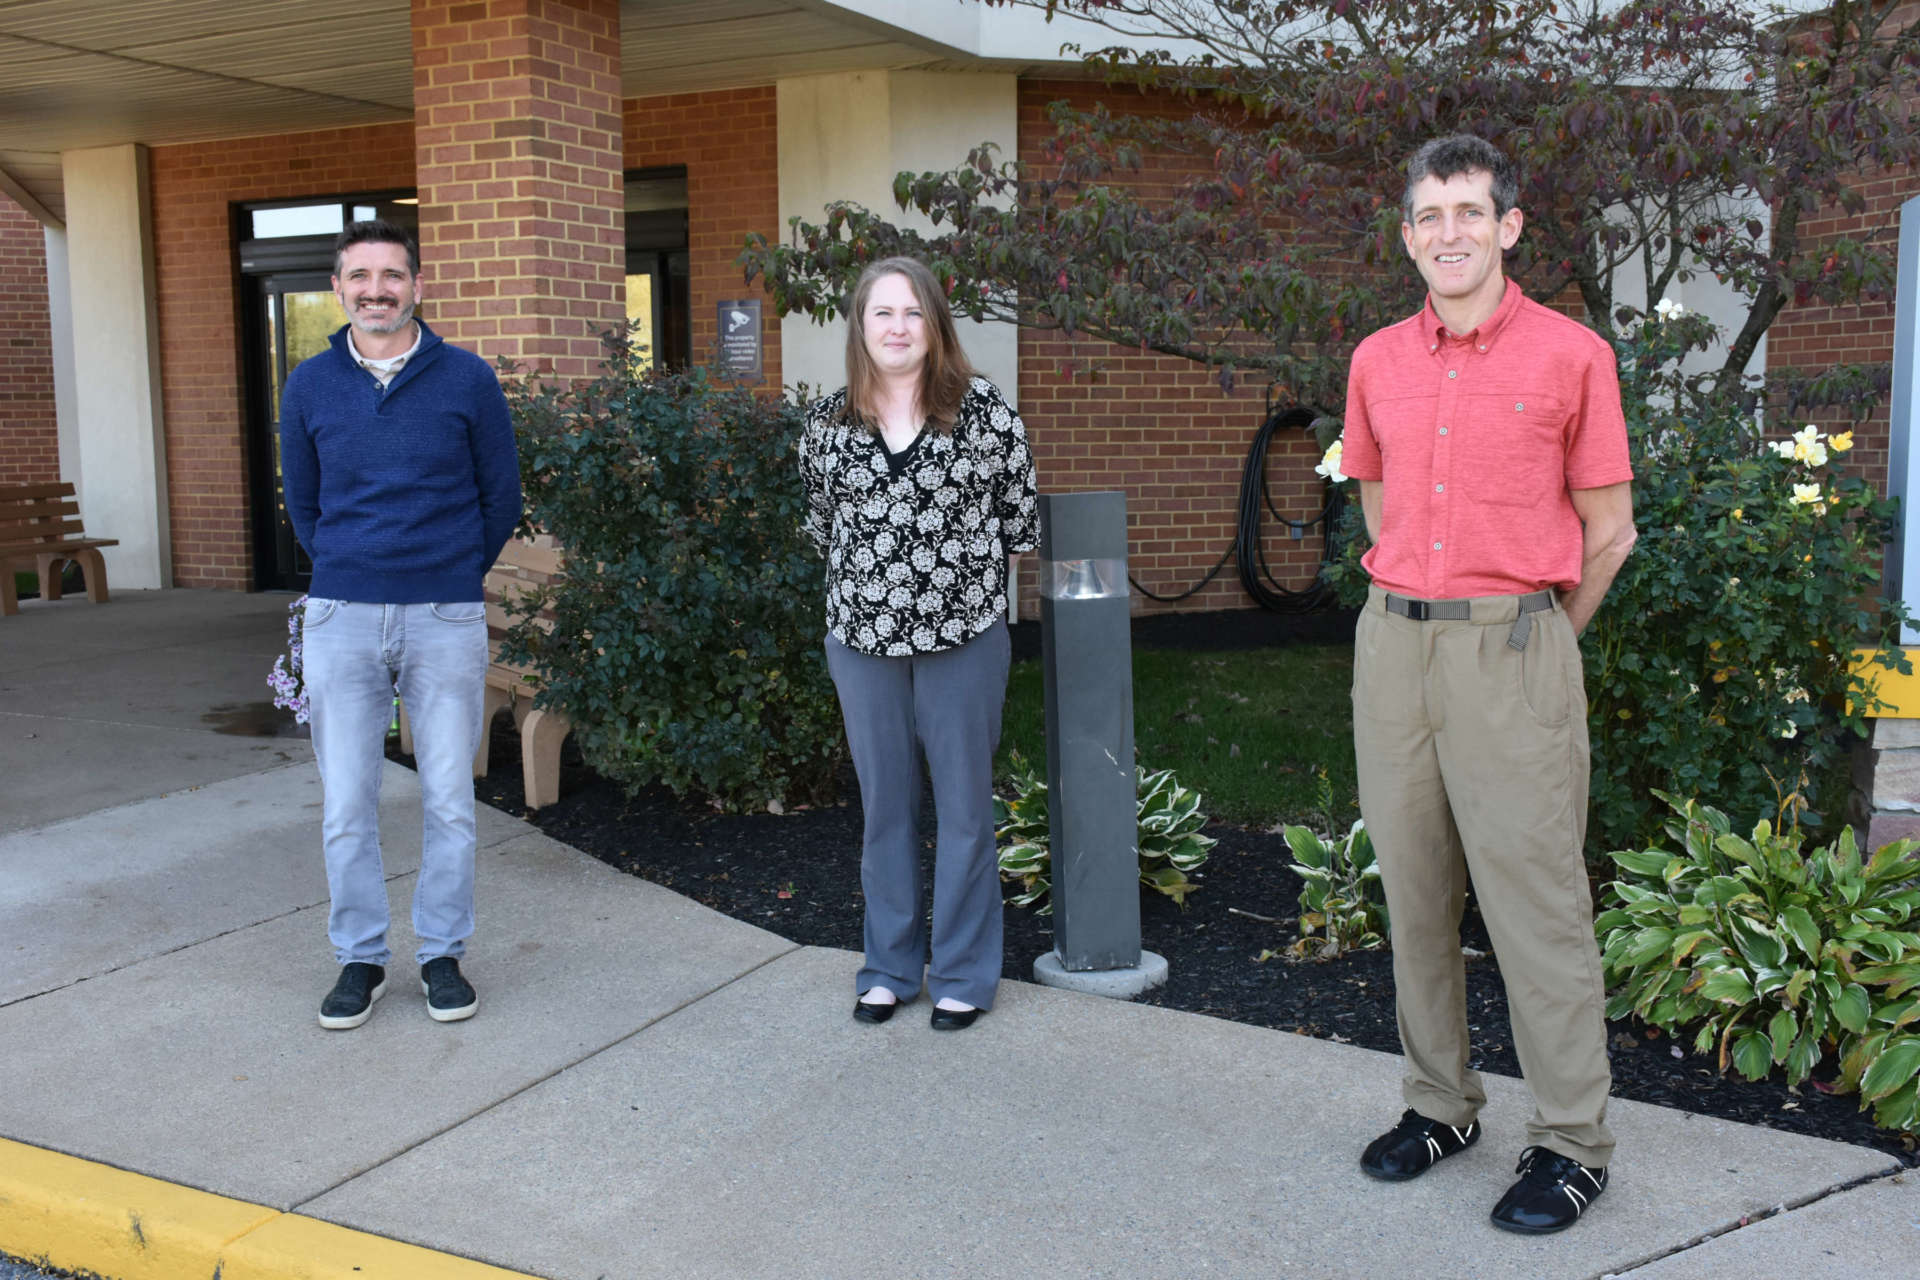 Pictured (l. to r.) are James Hersick, communications and marketing support; Candace Sutphin, program manager; and Dr. Mark Cucuzzella, project lead. Not pictured are Fiona Harrison, Charles Town market manager, and Cindy Marzullo, Shepherdstown Market Manager.